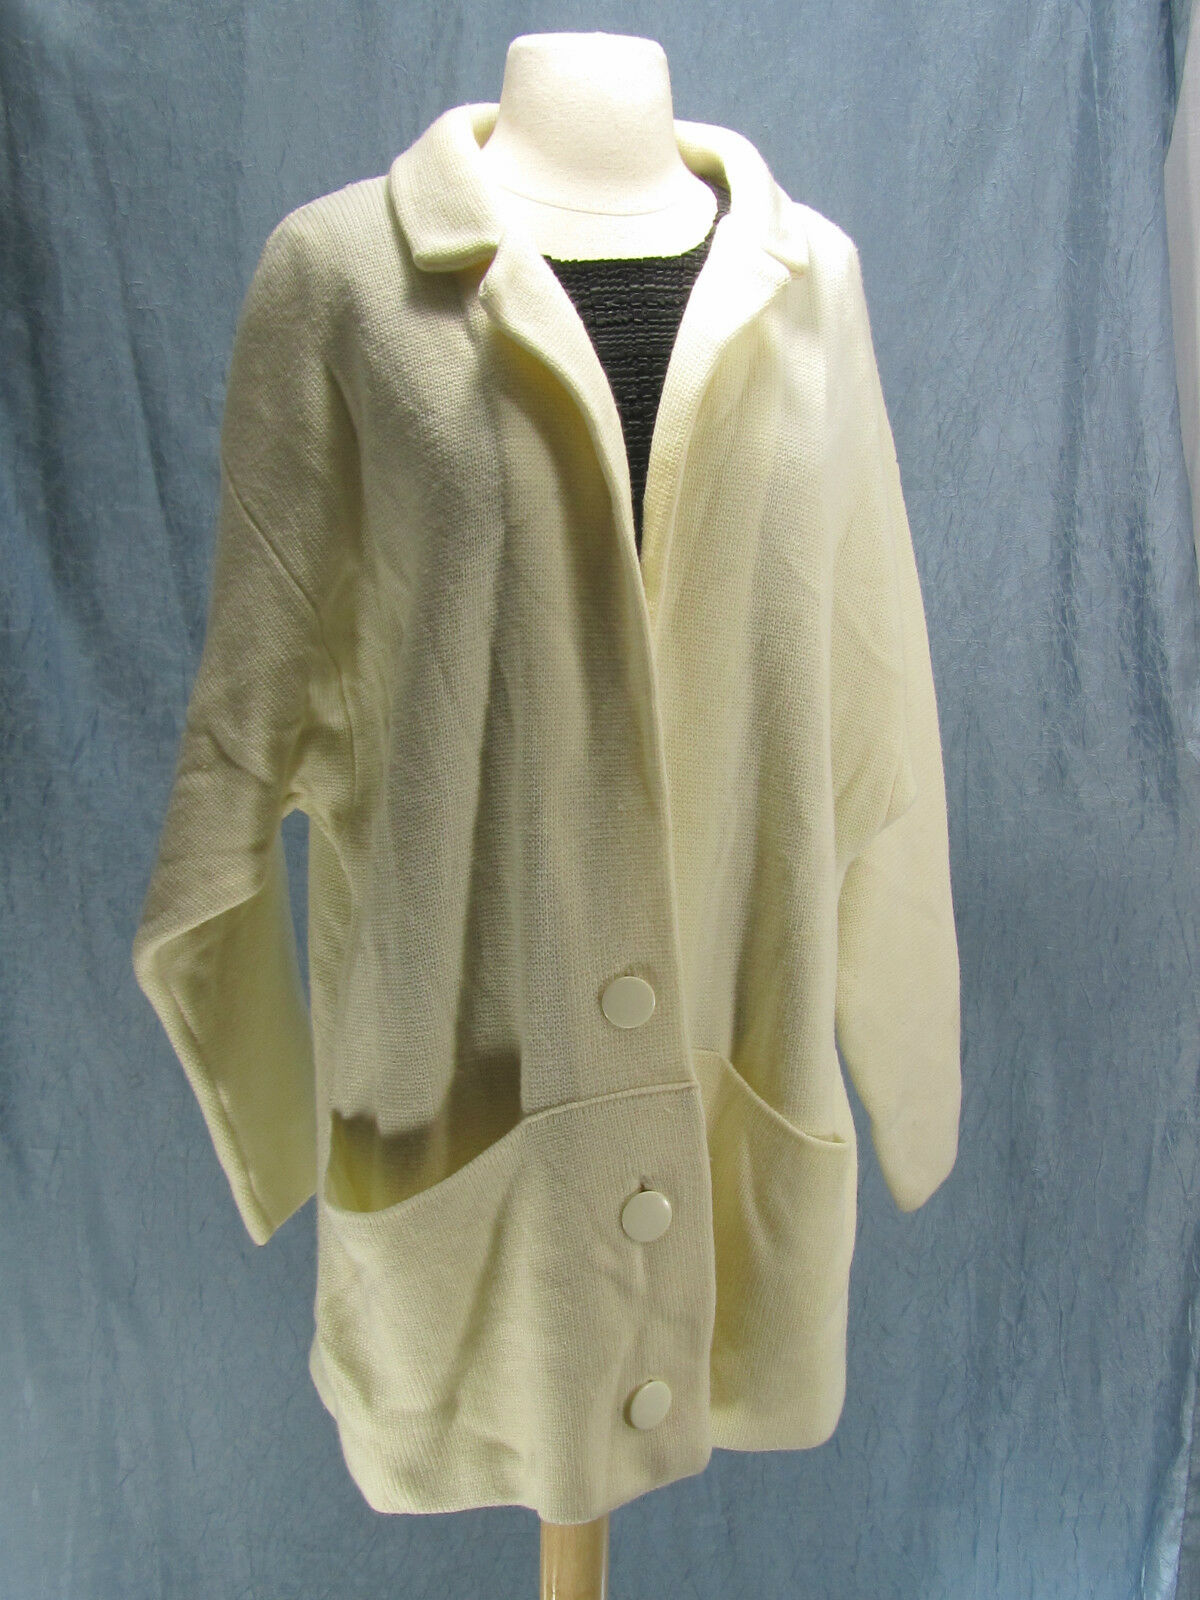 VINTAGE Ivory Cream long button up cardigan knit top sweater coat Duster 40 M L